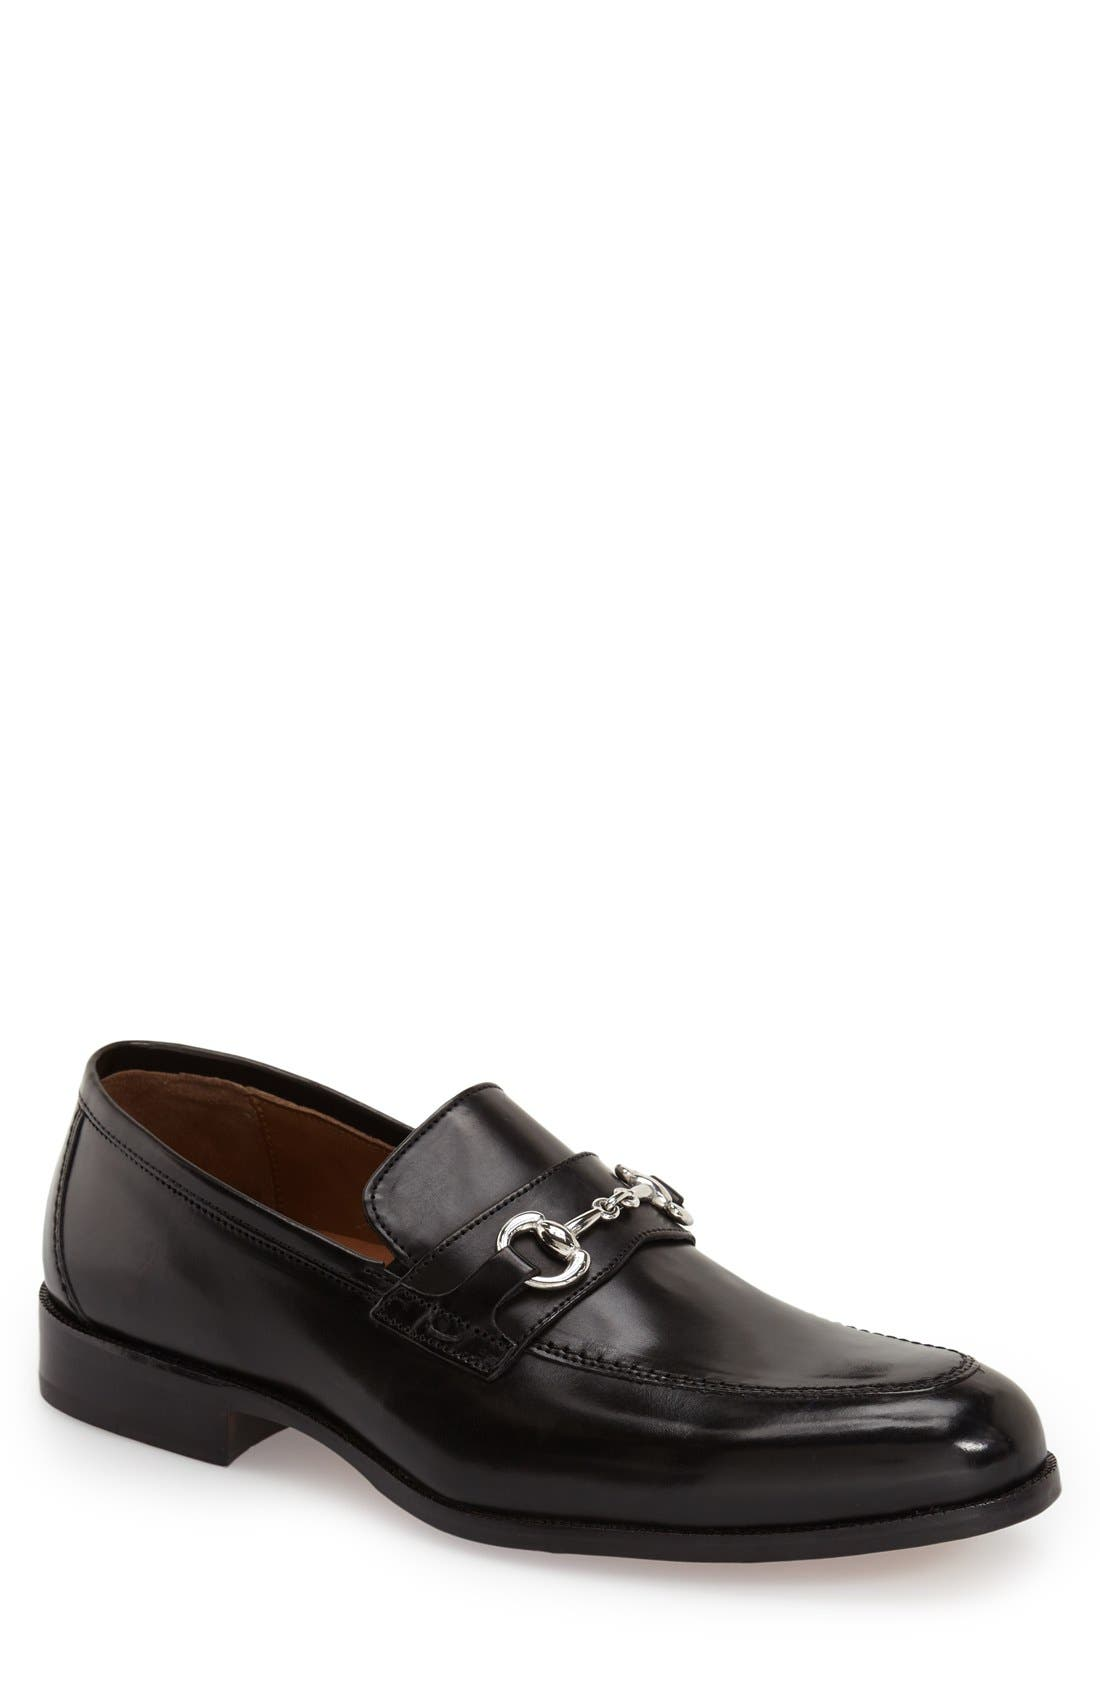 'Stratton' Bit Loafer,                             Main thumbnail 1, color,